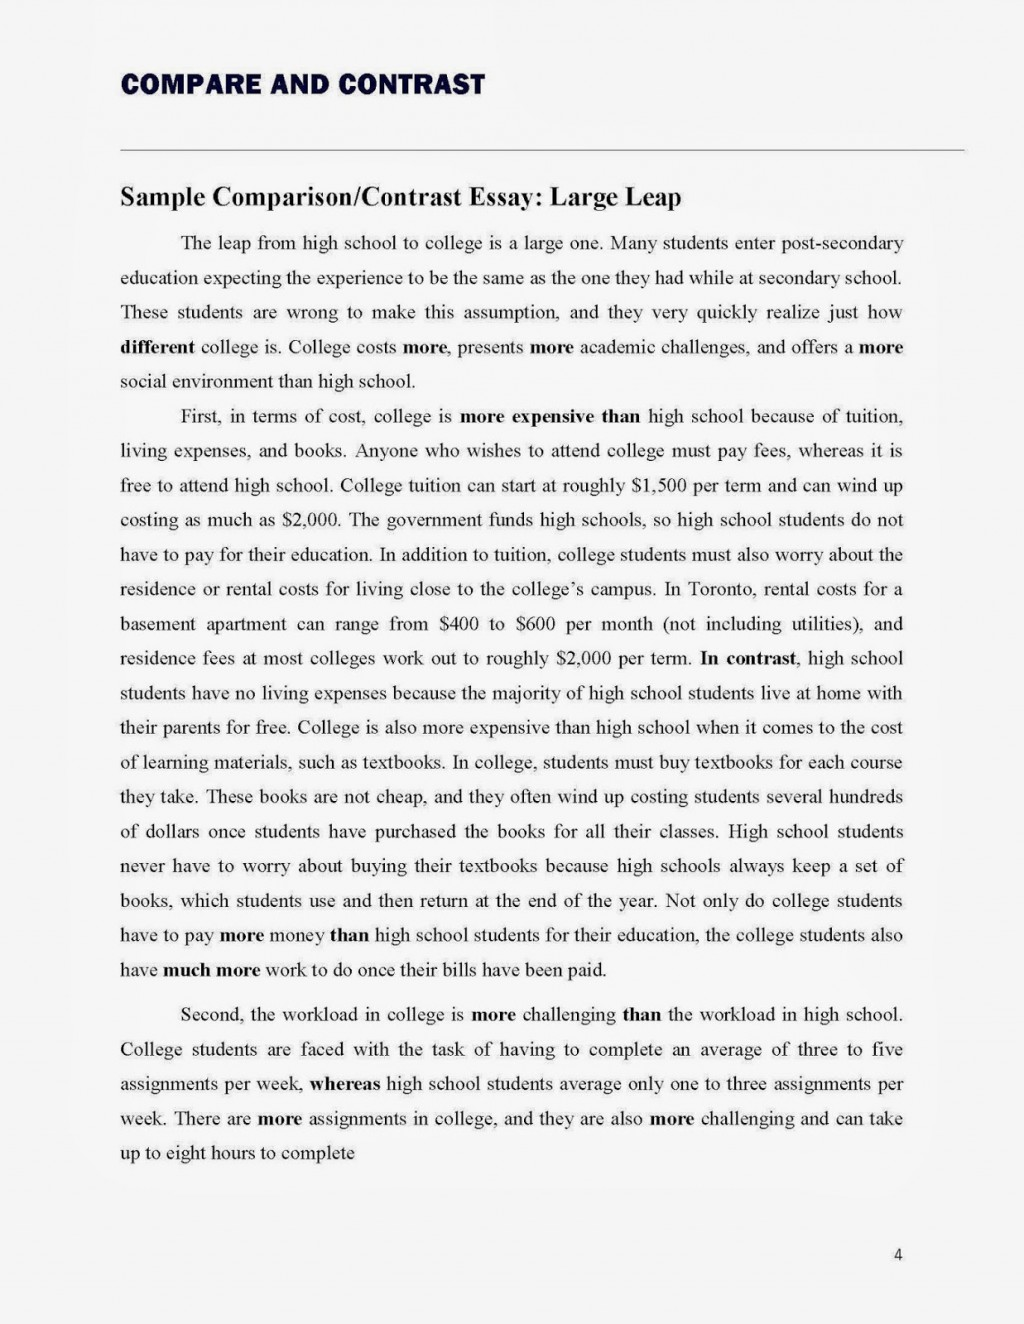 011 Good Compare And Contrast Essay Compare20and20contrast20essay Page 4 Unbelievable How To Write A Conclusion Paragraph For Examples Transition Words Essays Pdf Large